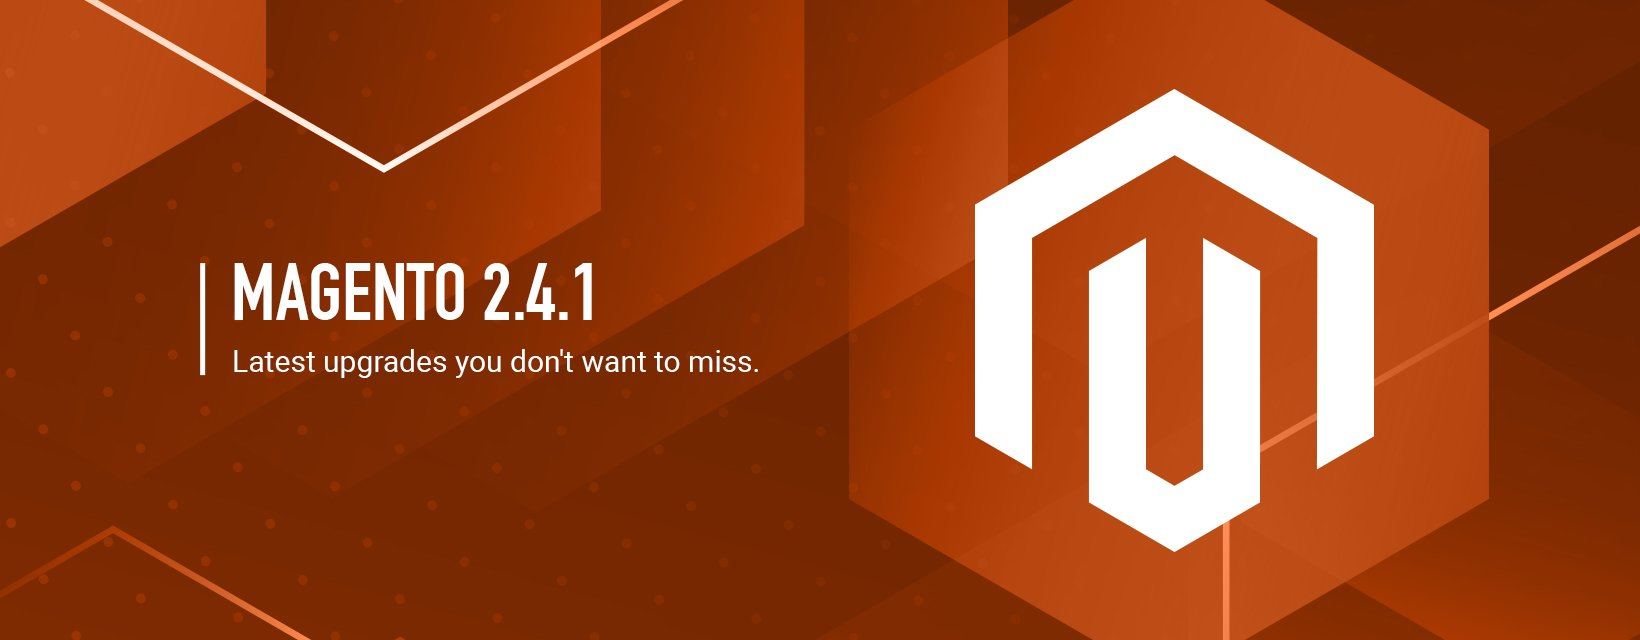 Magento Commerce 2.4.1 – Latest Upgrades you don't want to miss